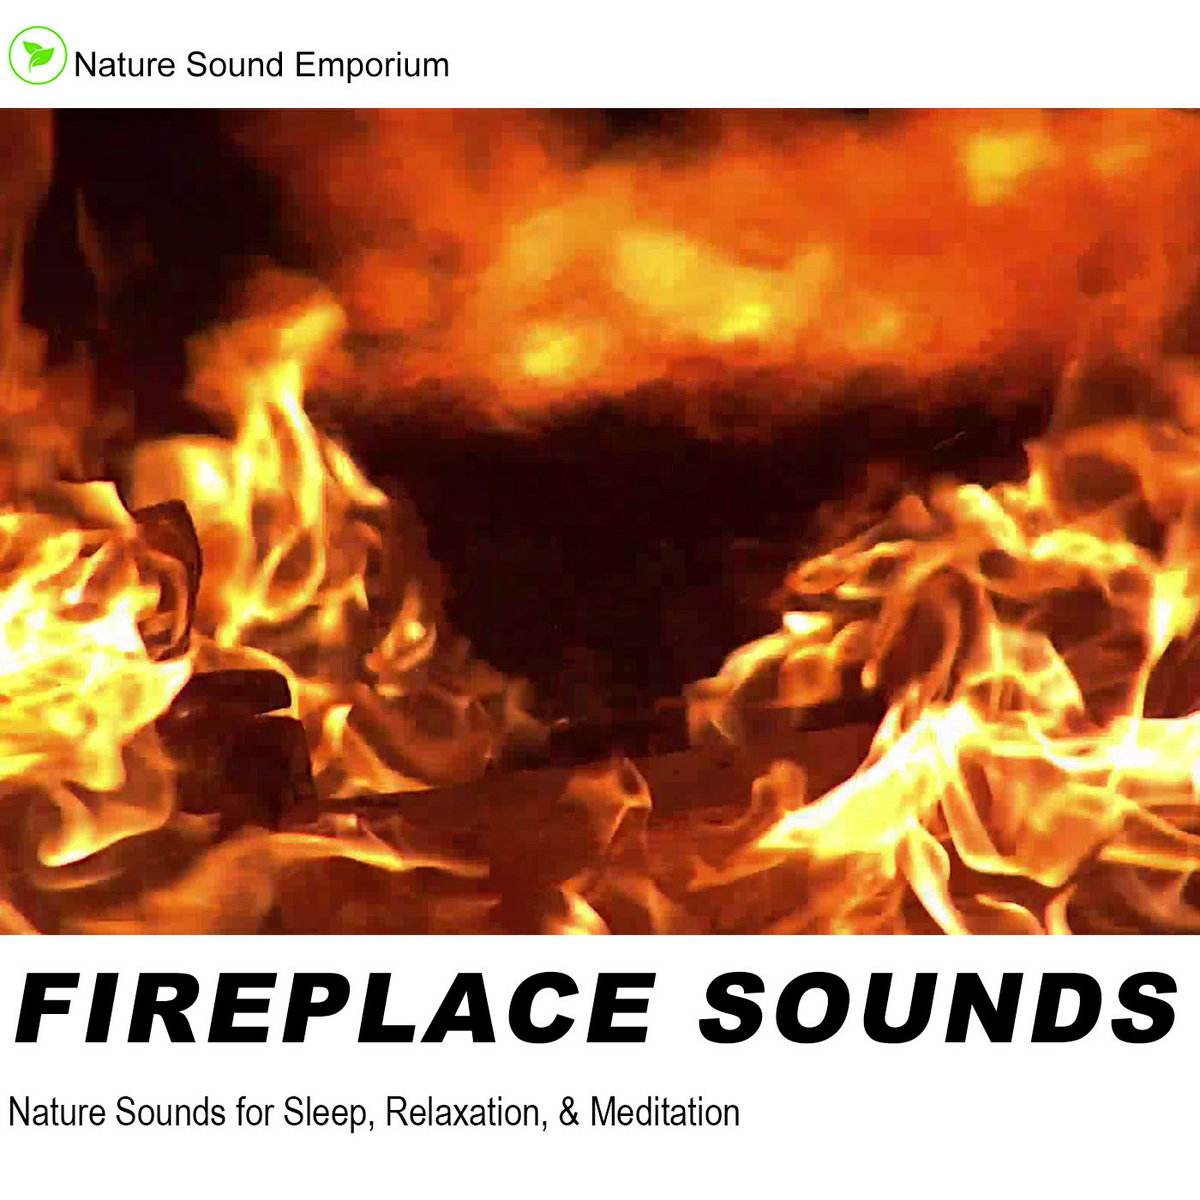 Fireplace Sounds Fireplace Sounds 1 Nature Sounds For Relaxation Meditation